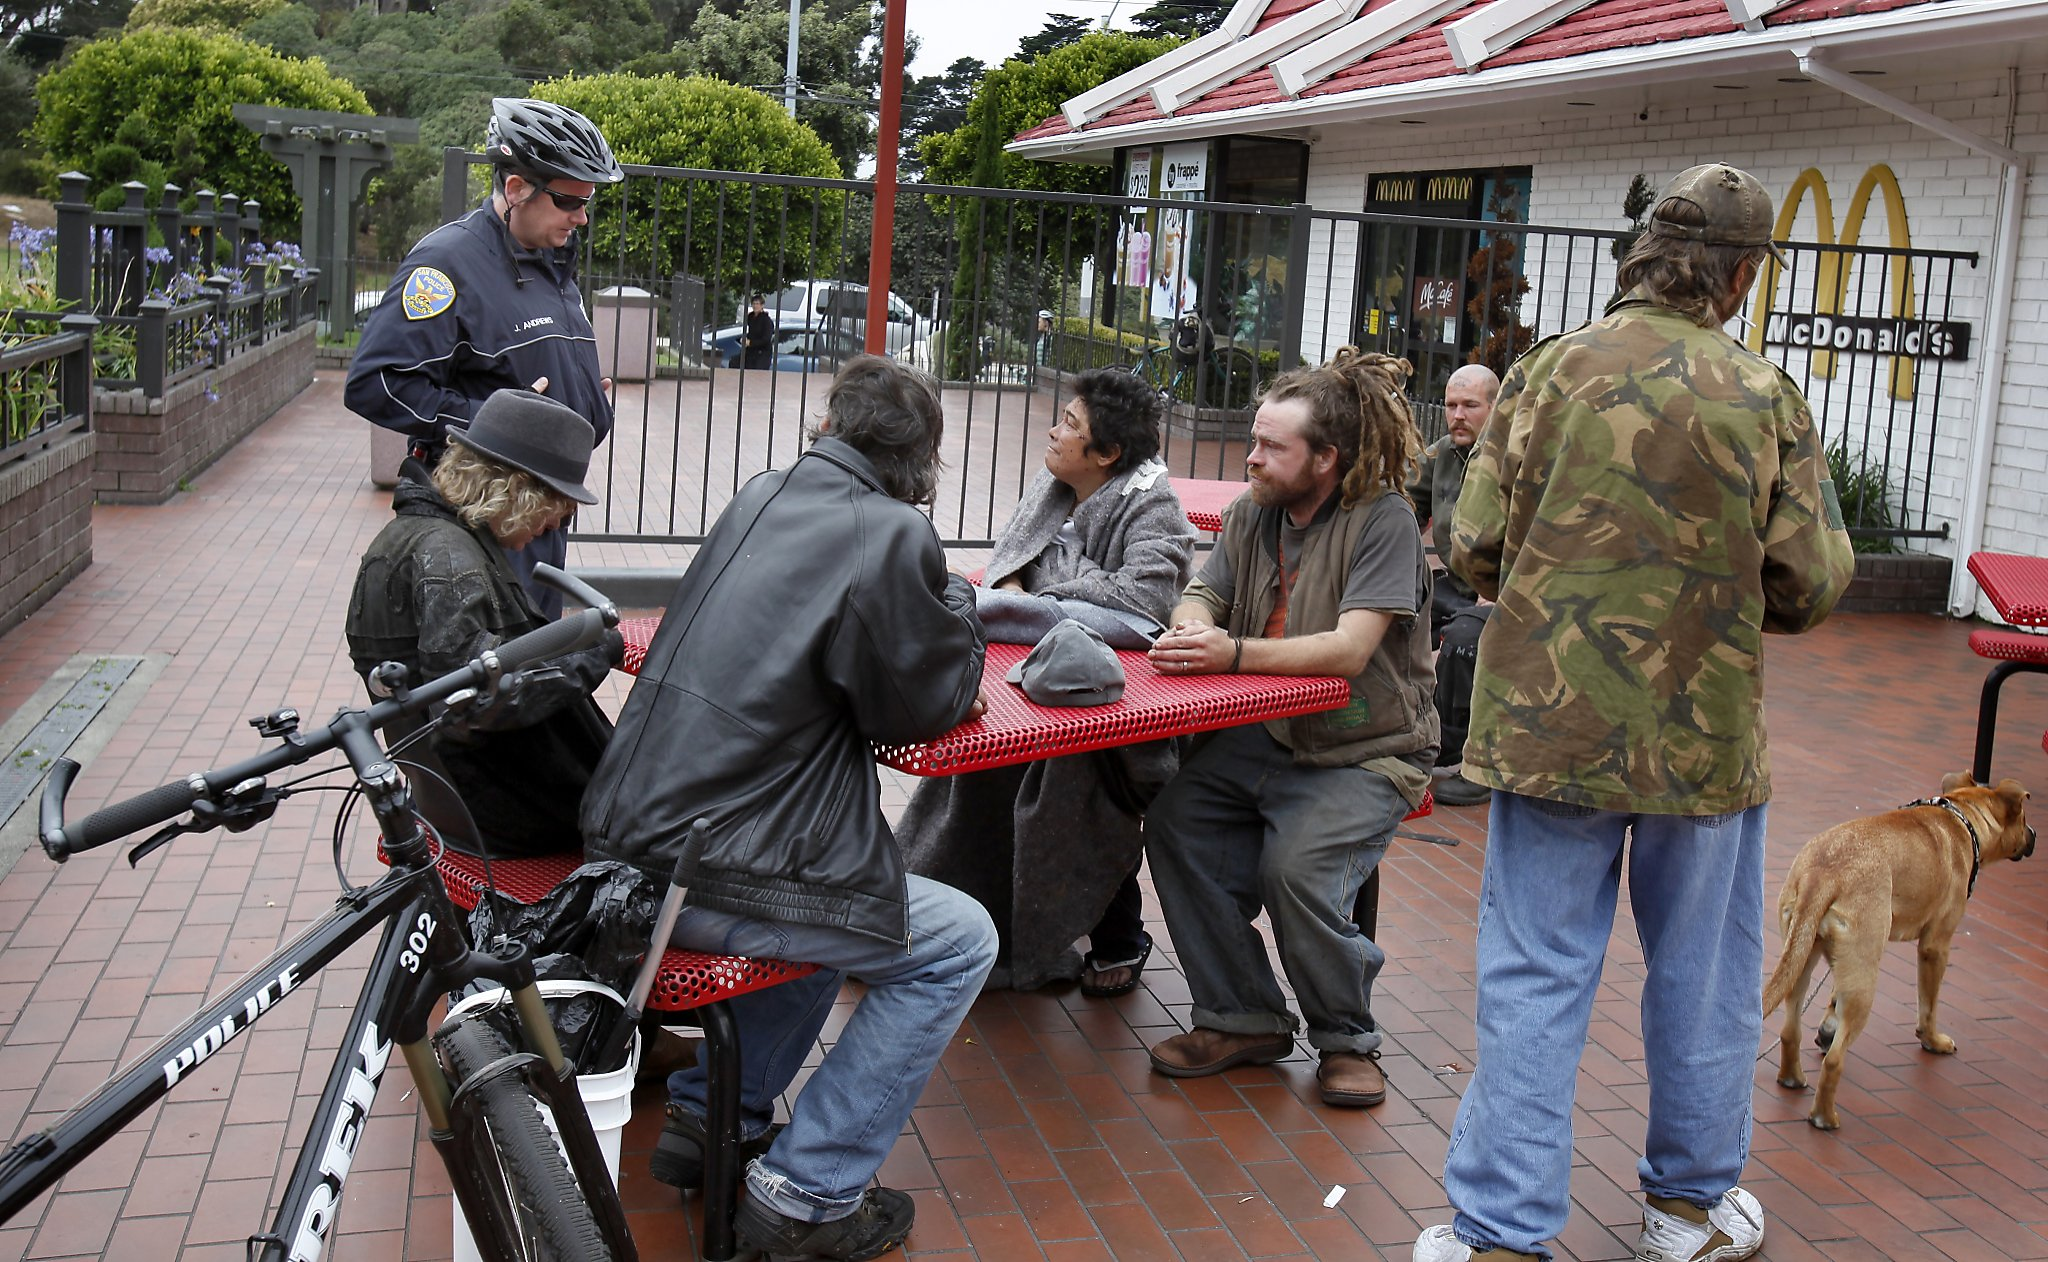 Sf Demands Mcdonald S Clean Up Drug Activity At Haight Location